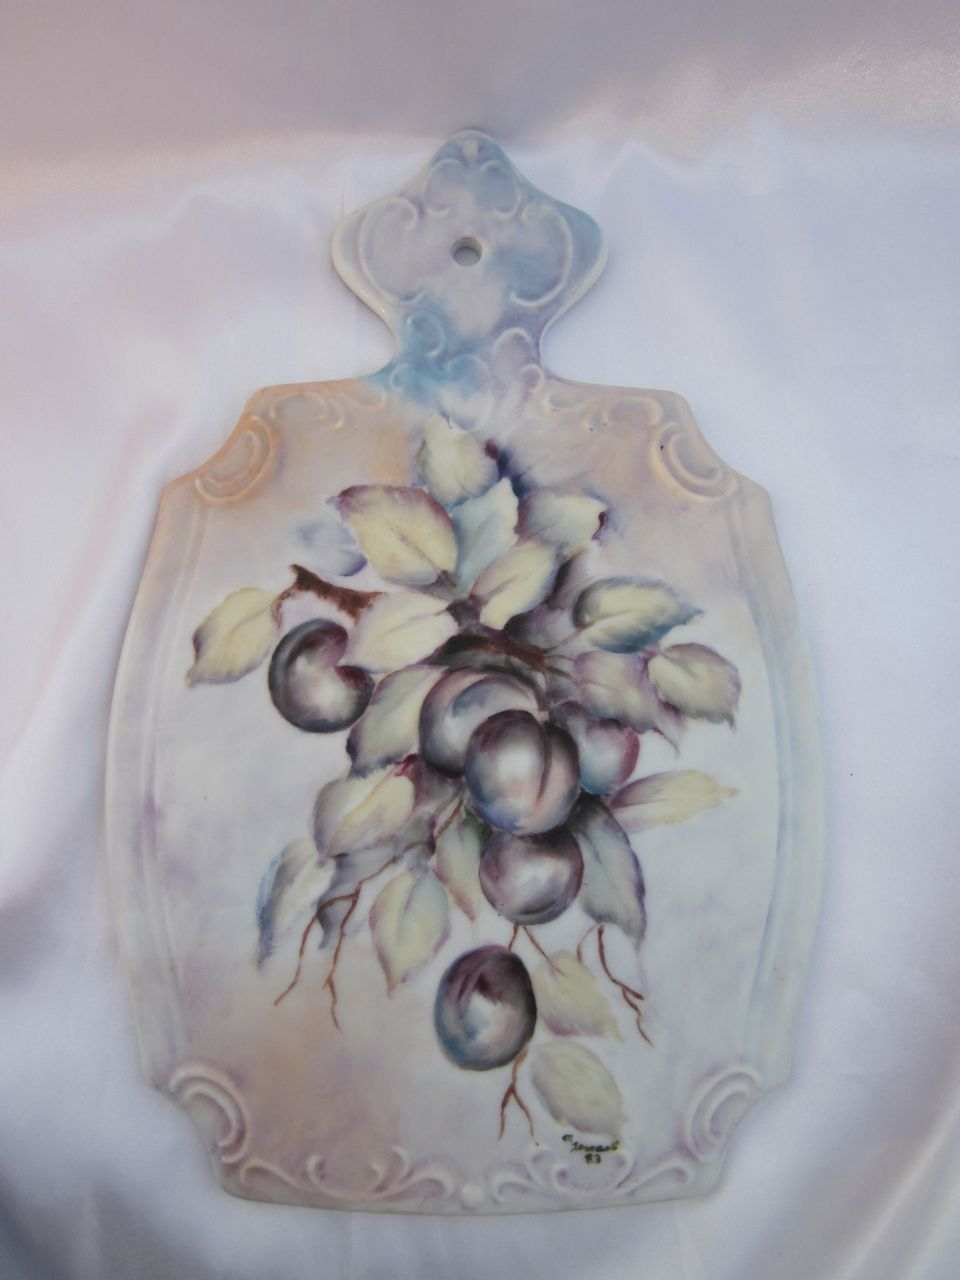 Hand Painted Plums Porcelain Trivet